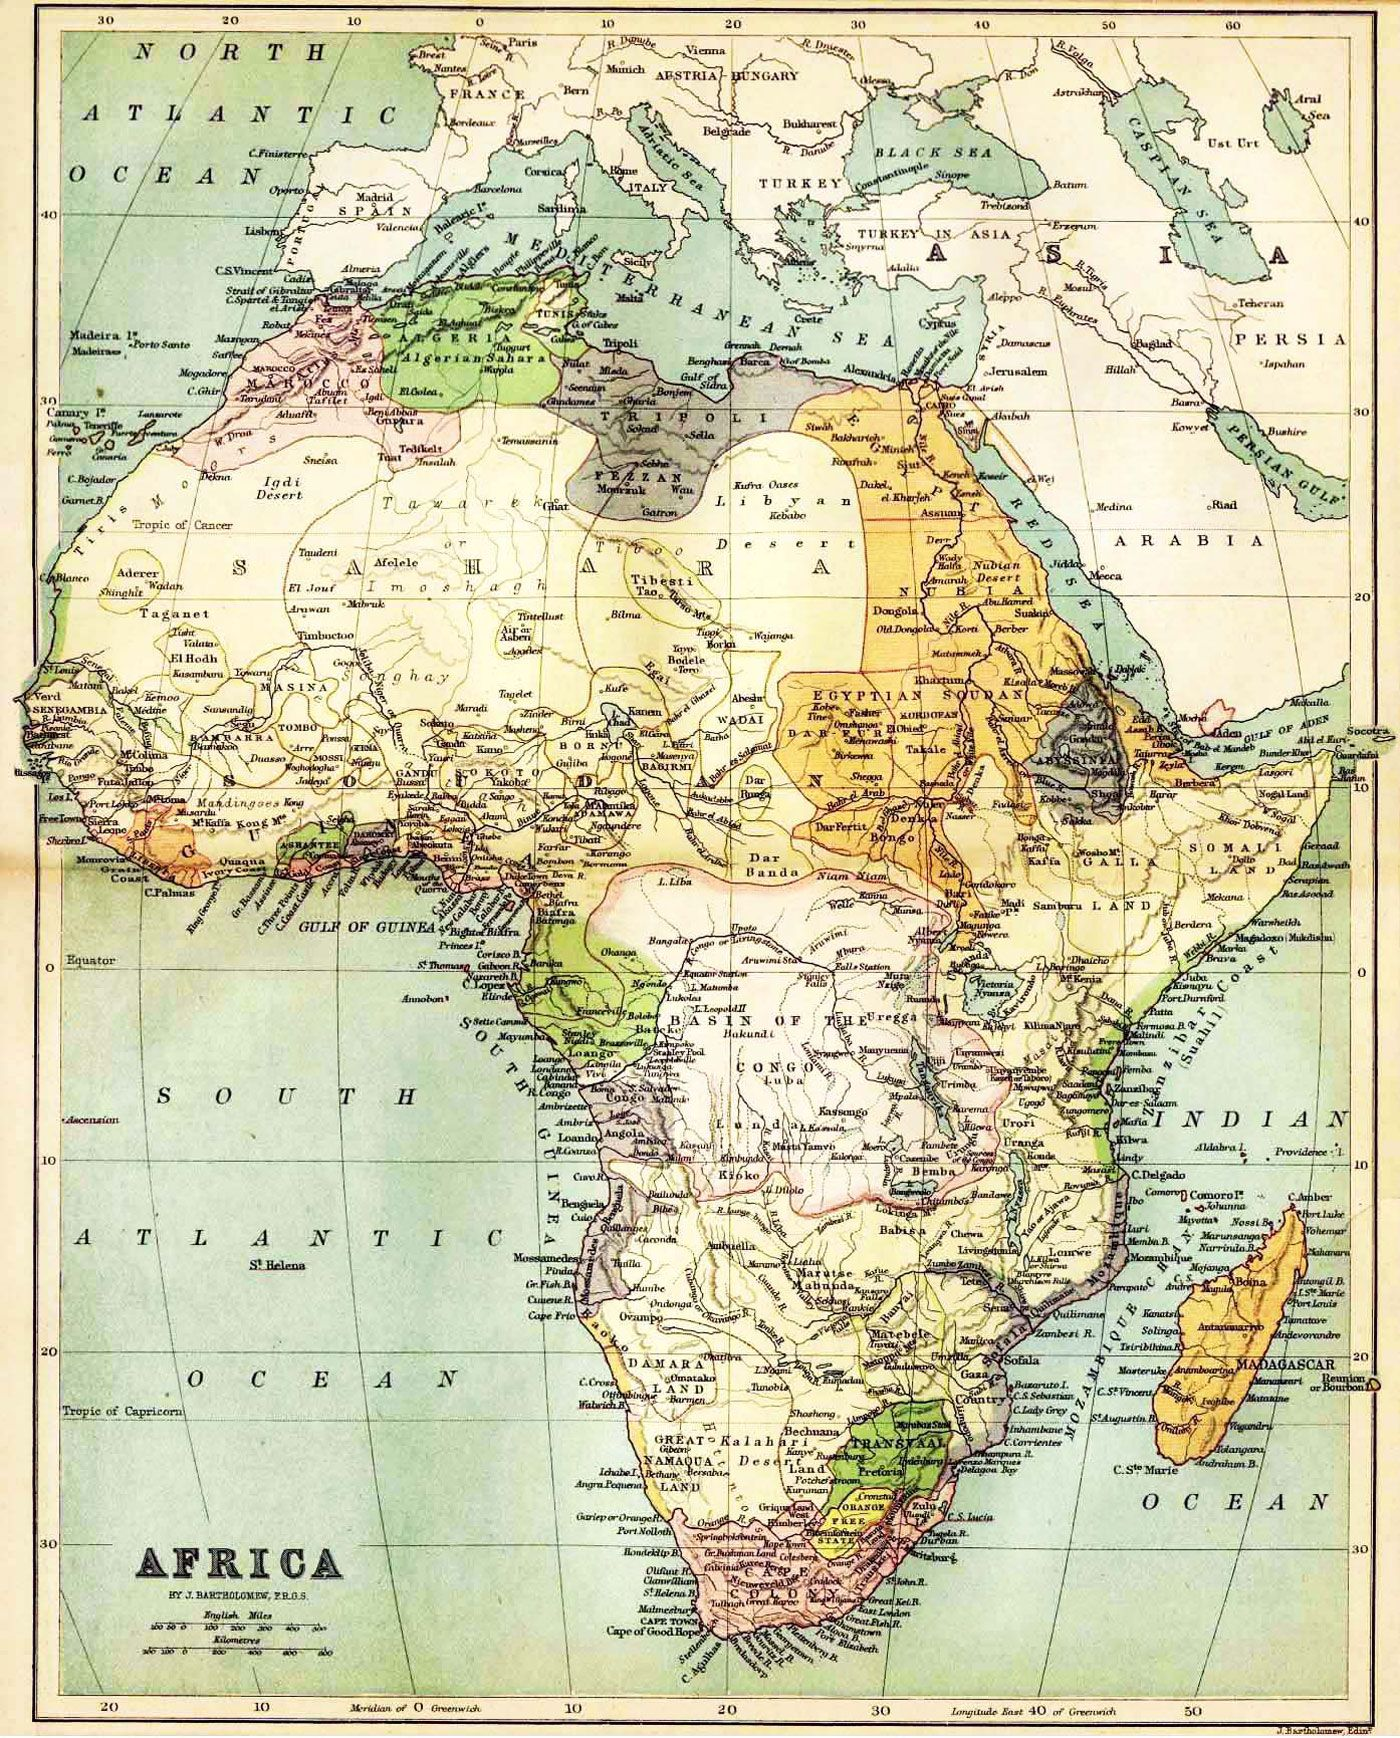 Part A Angola Is Found In The Continent Of Africa Africa - Angola road map